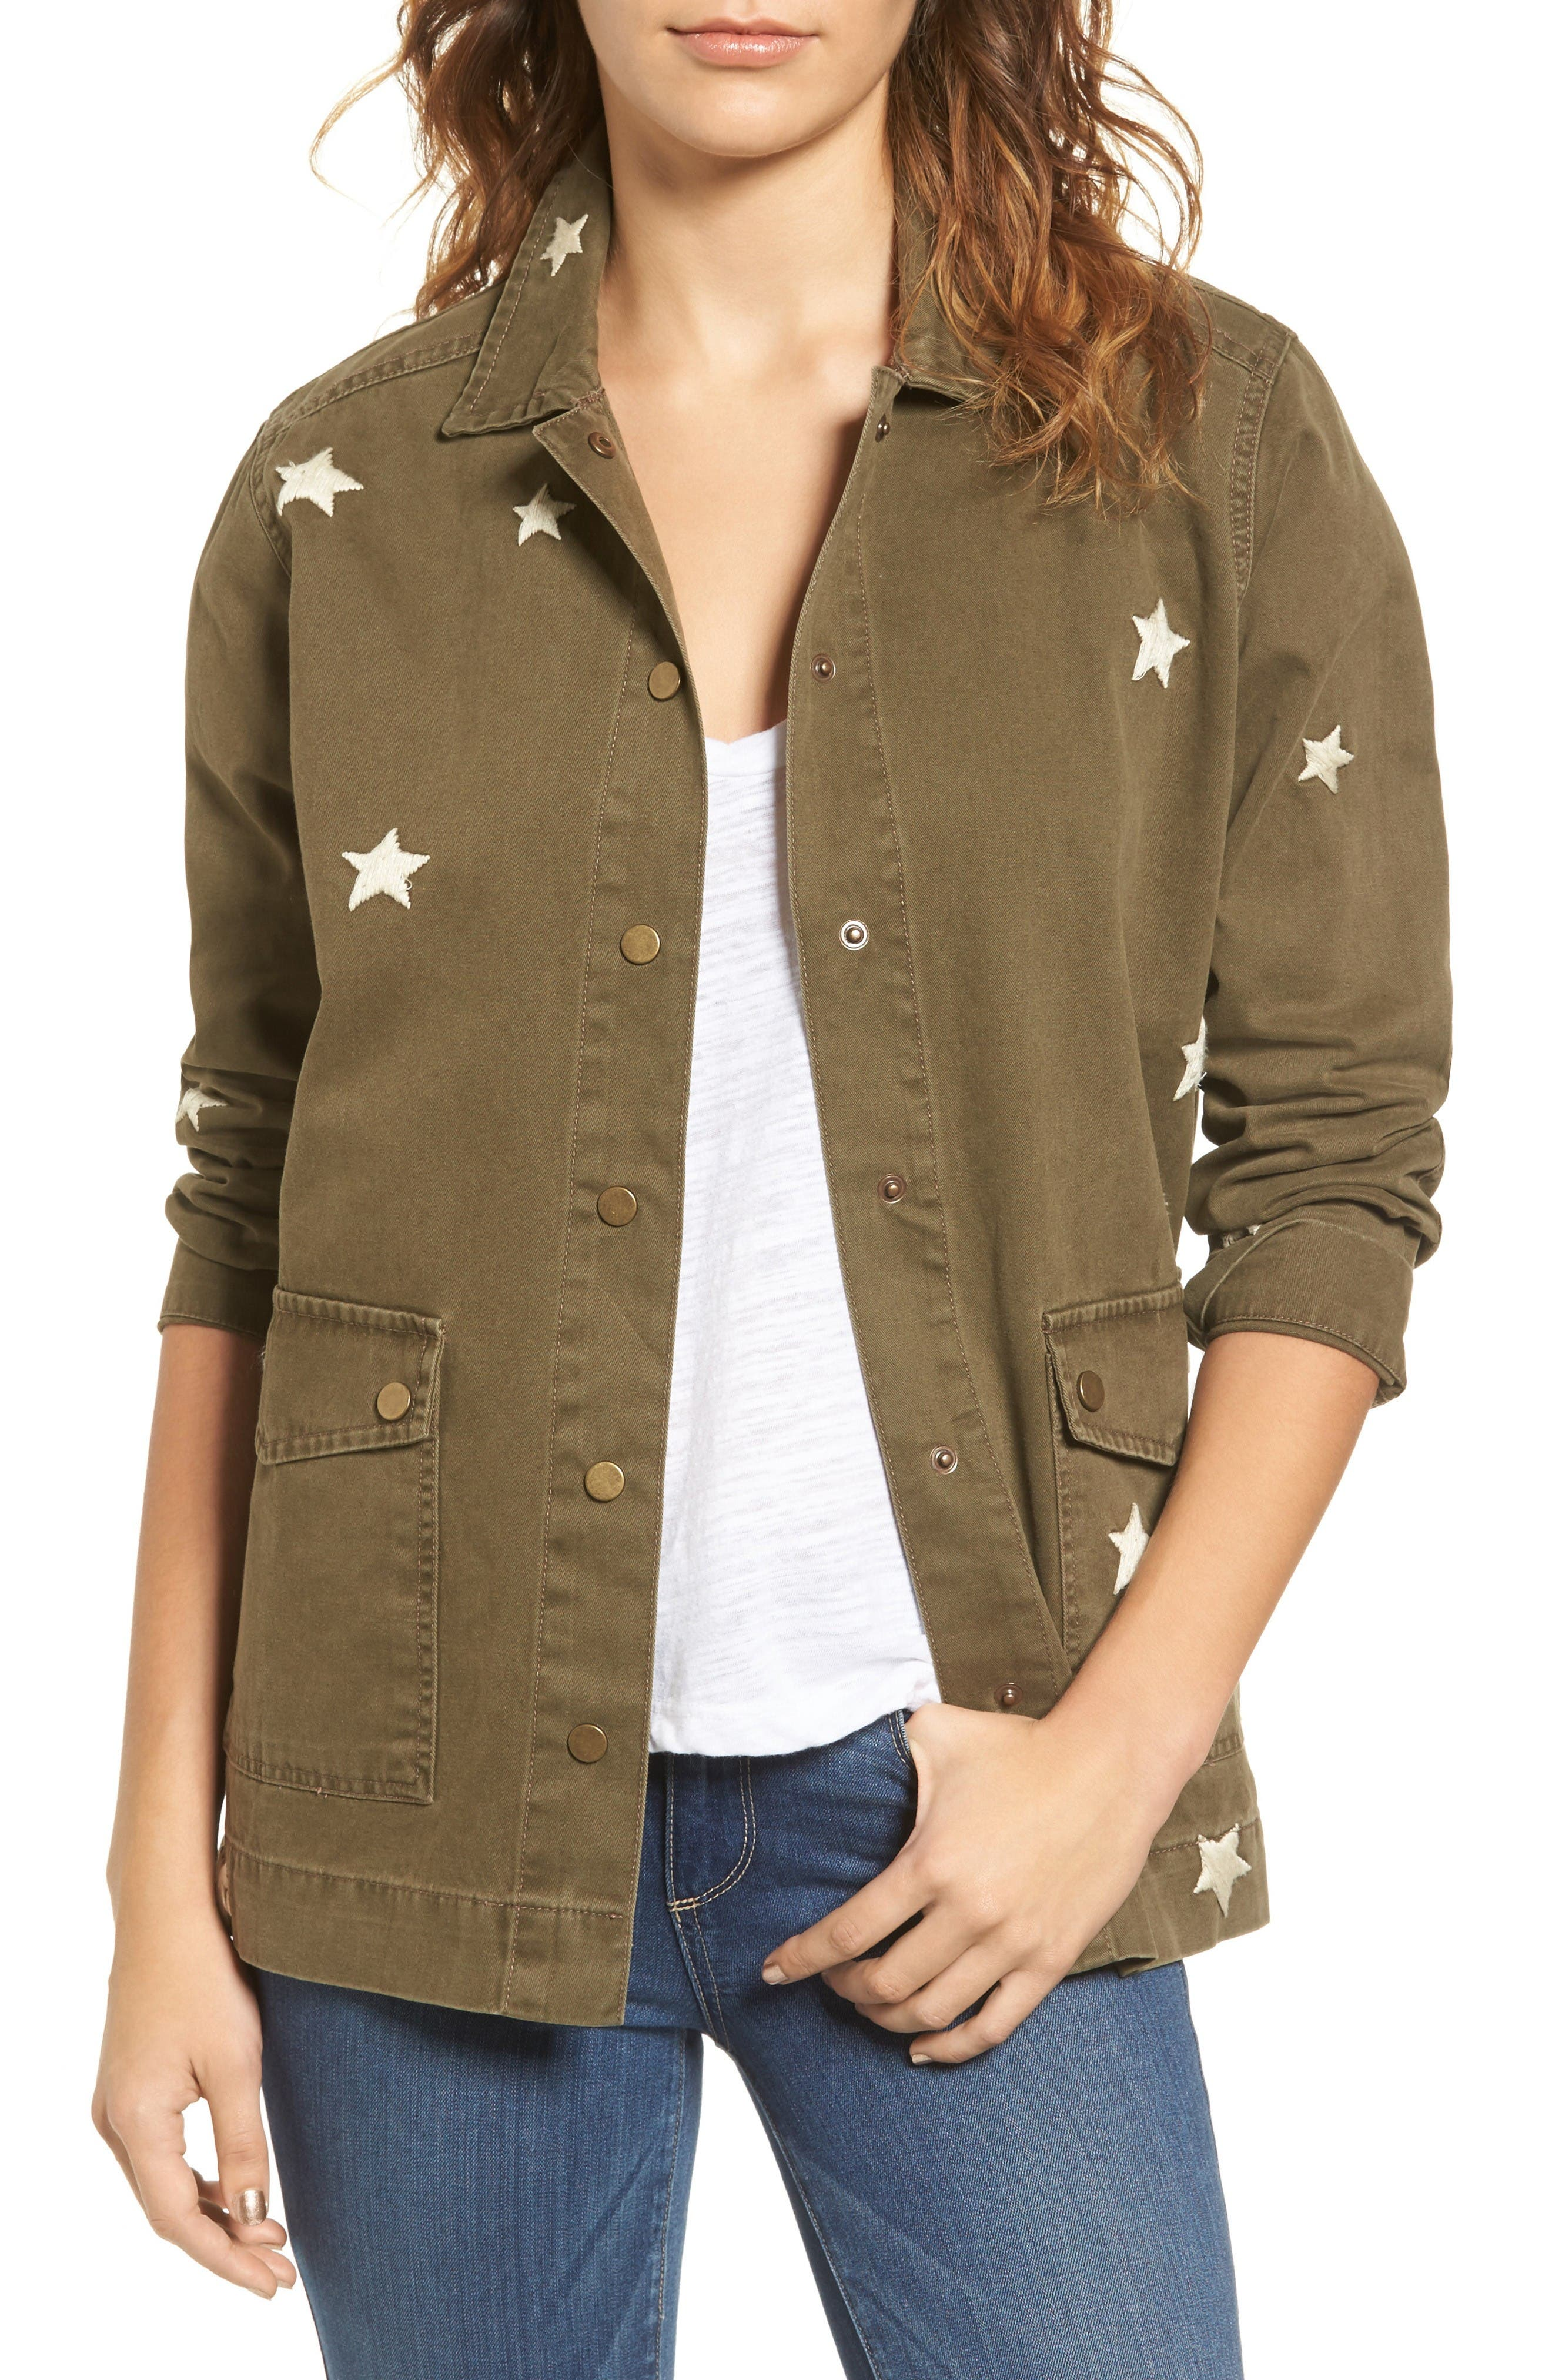 SINCERELY JULES Star Embroidered Jacket